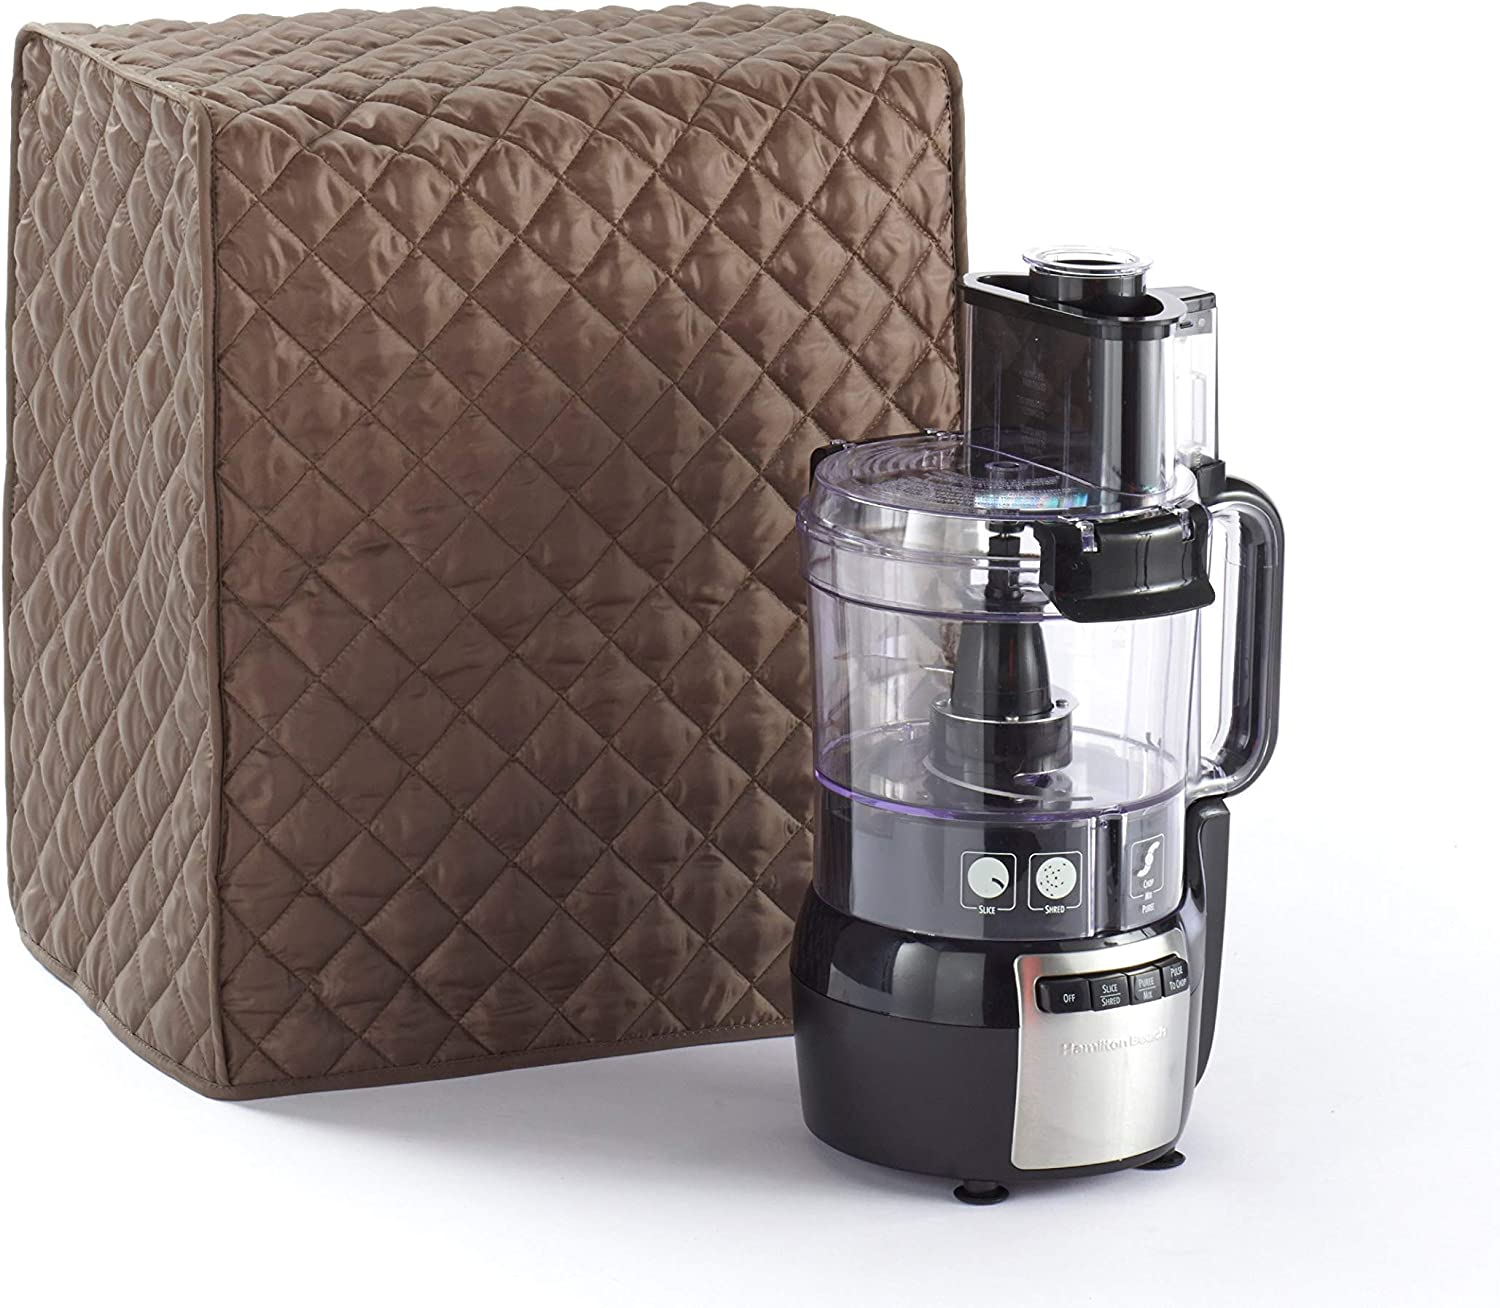 Covermates Food Processor Cover 15W x 11D x 18H Diamond Collection 2 YR Warranty Year Around Protection – Bronze